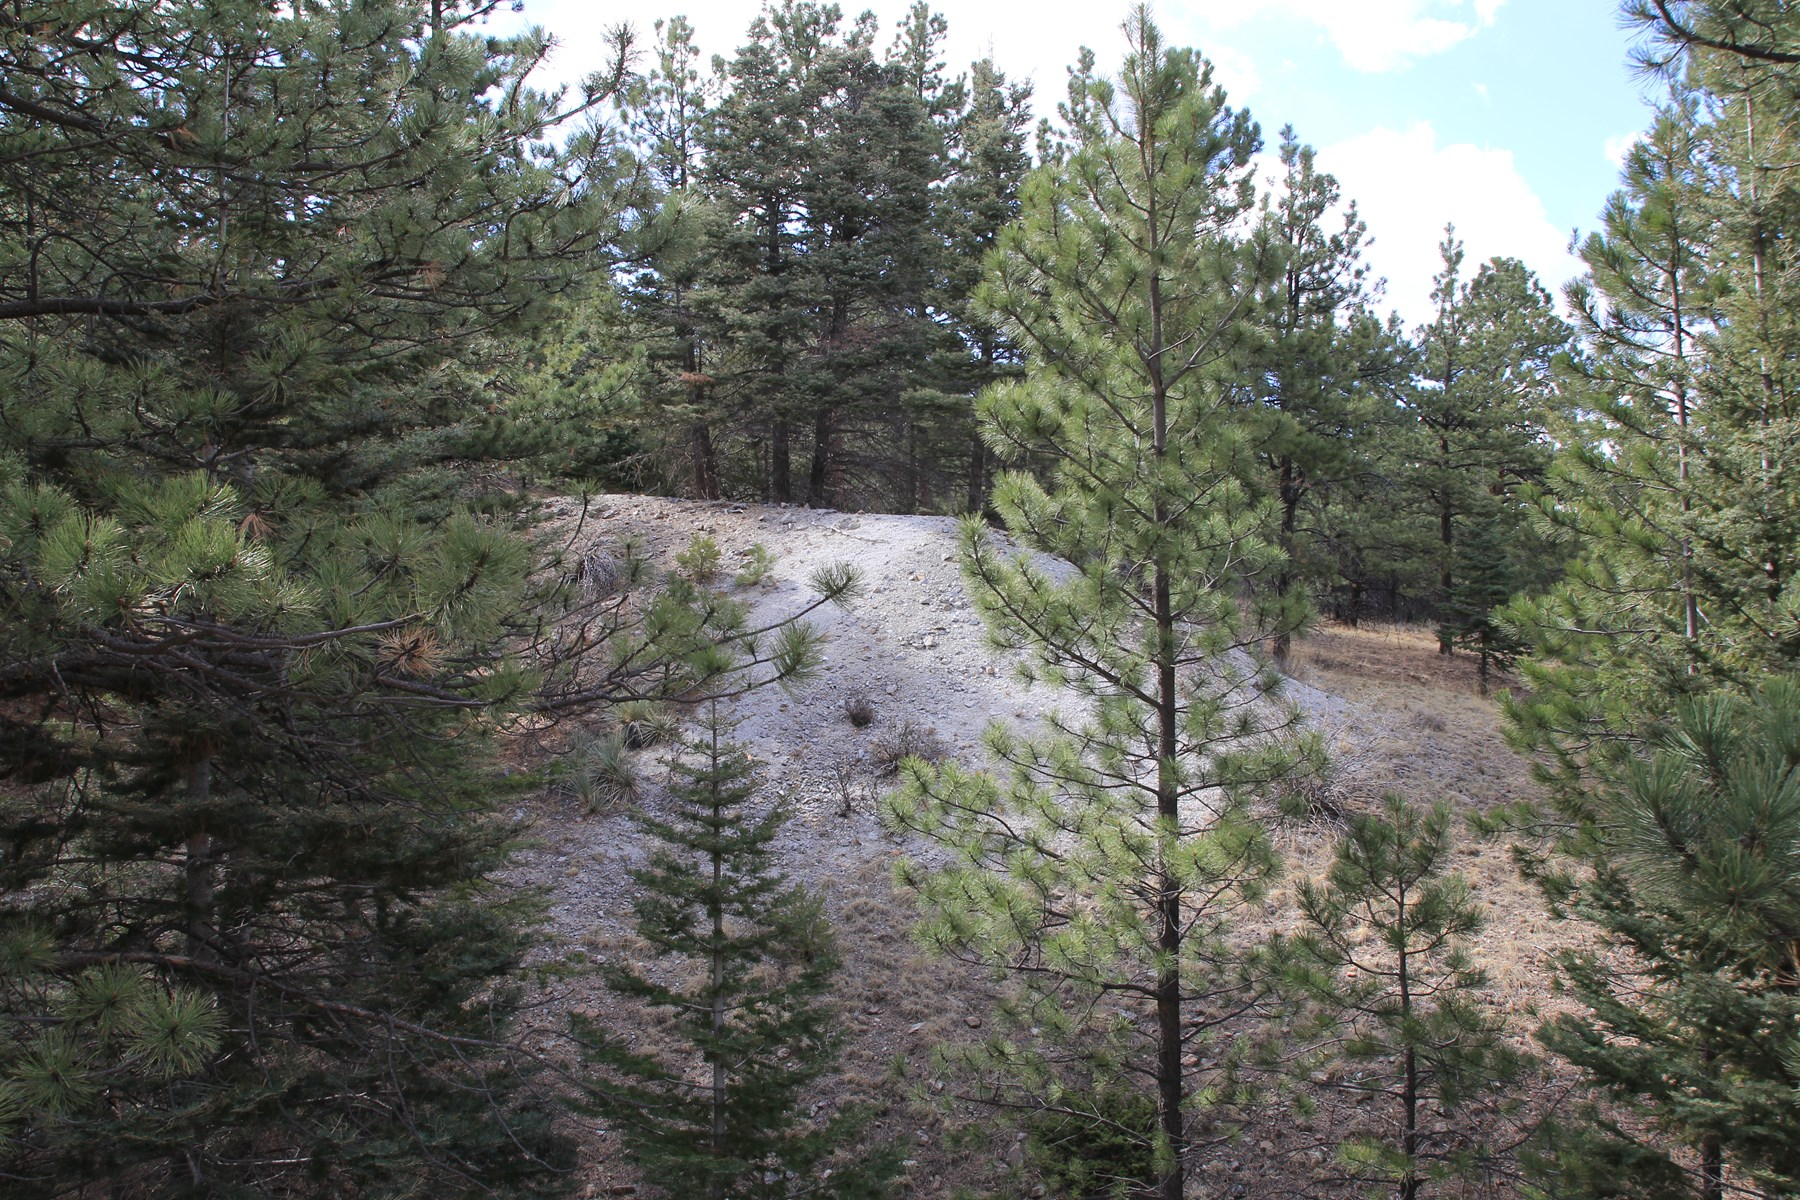 Land in SIlver Cliff Colorado Custer County